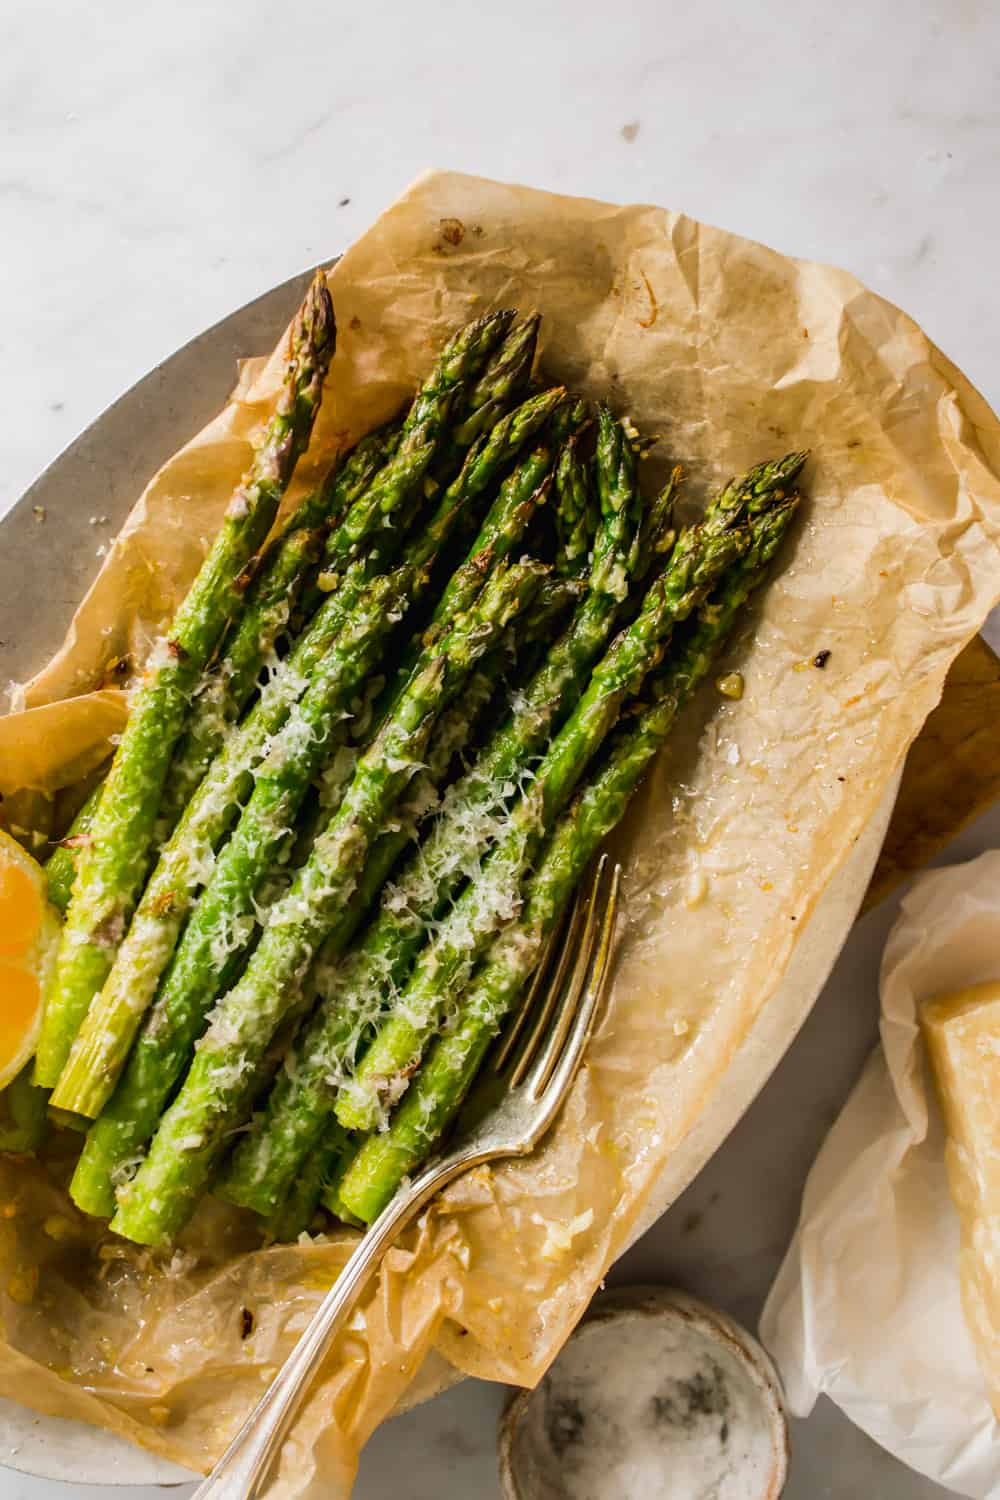 baked asparagus with cheese on top on a piece of parchment paper